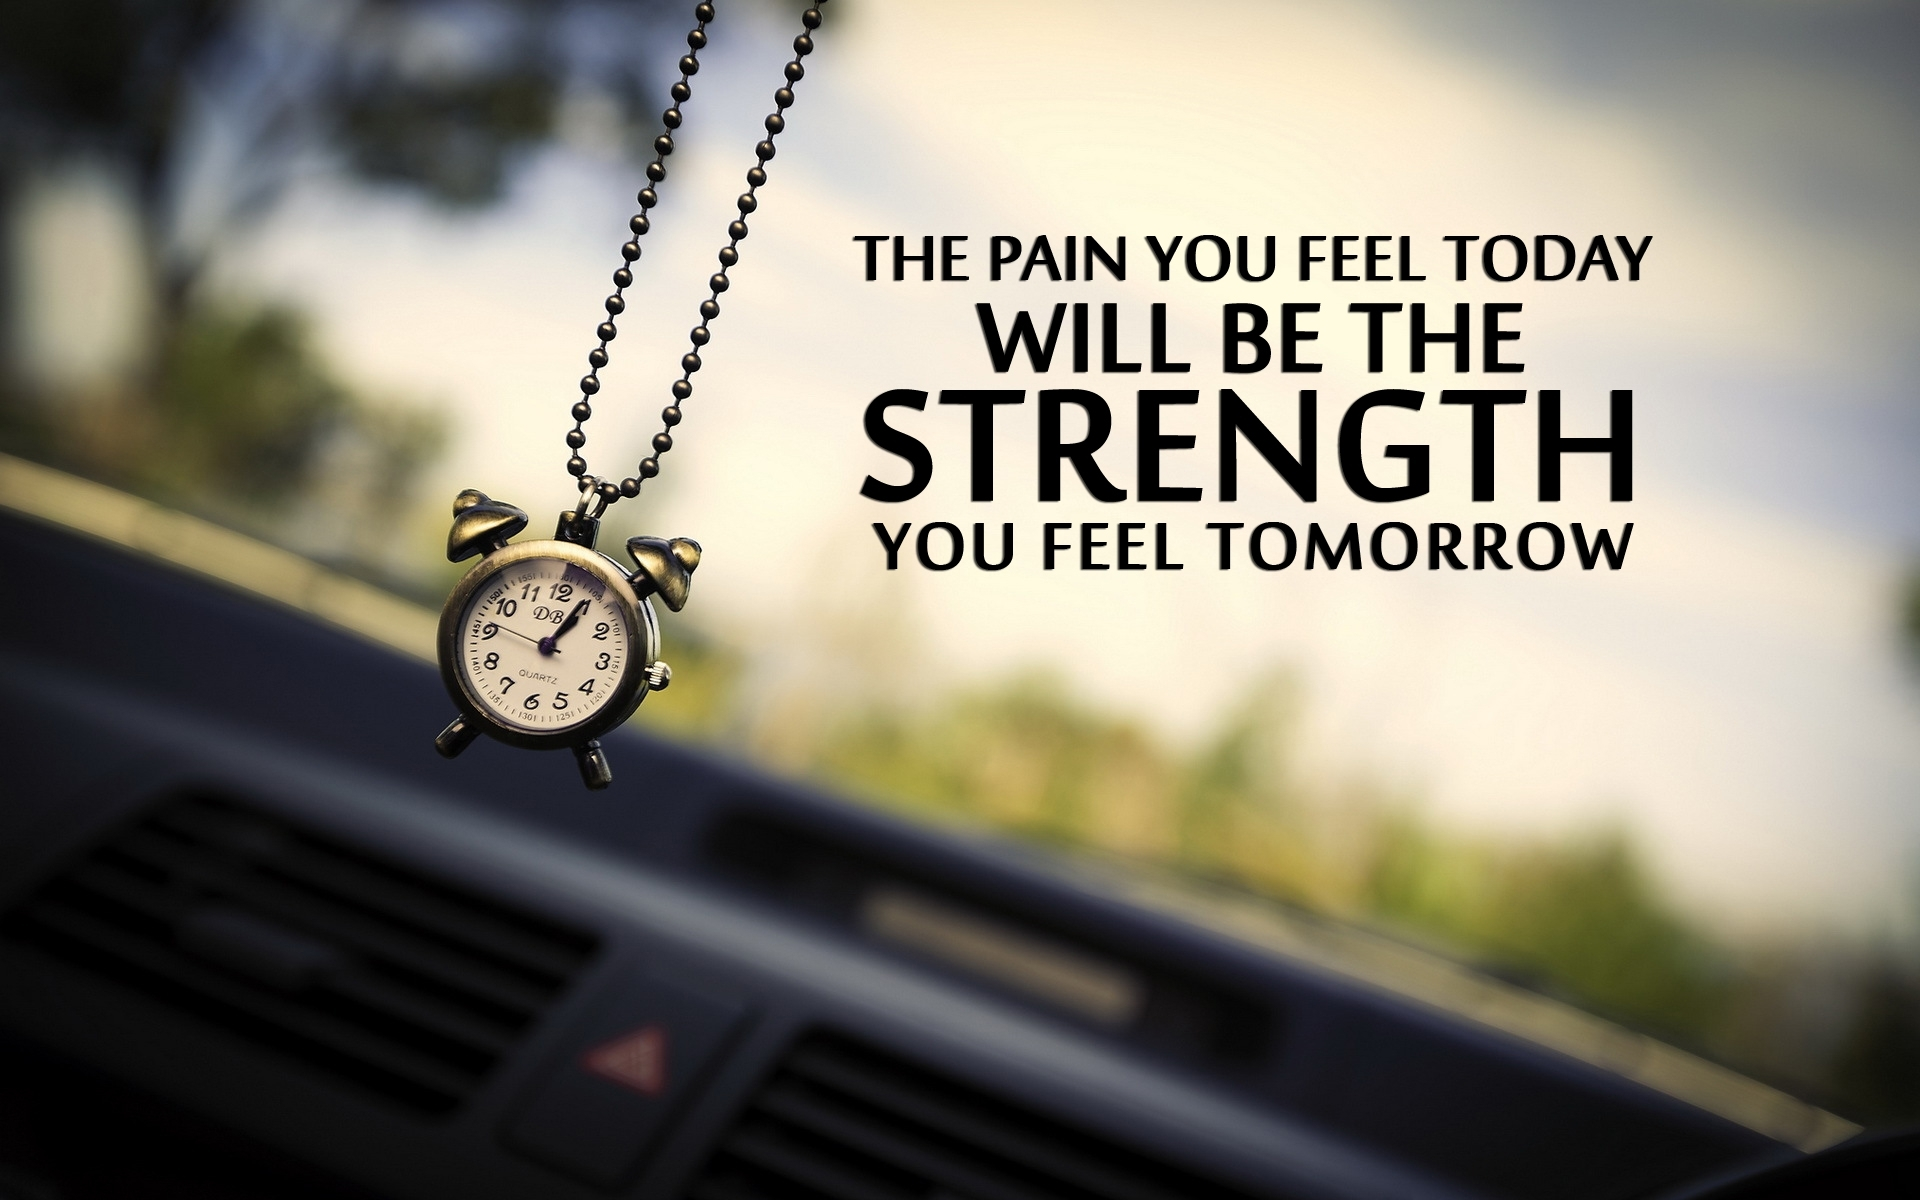 amazing inspirational quotes hd wallpaper laptop background | hd